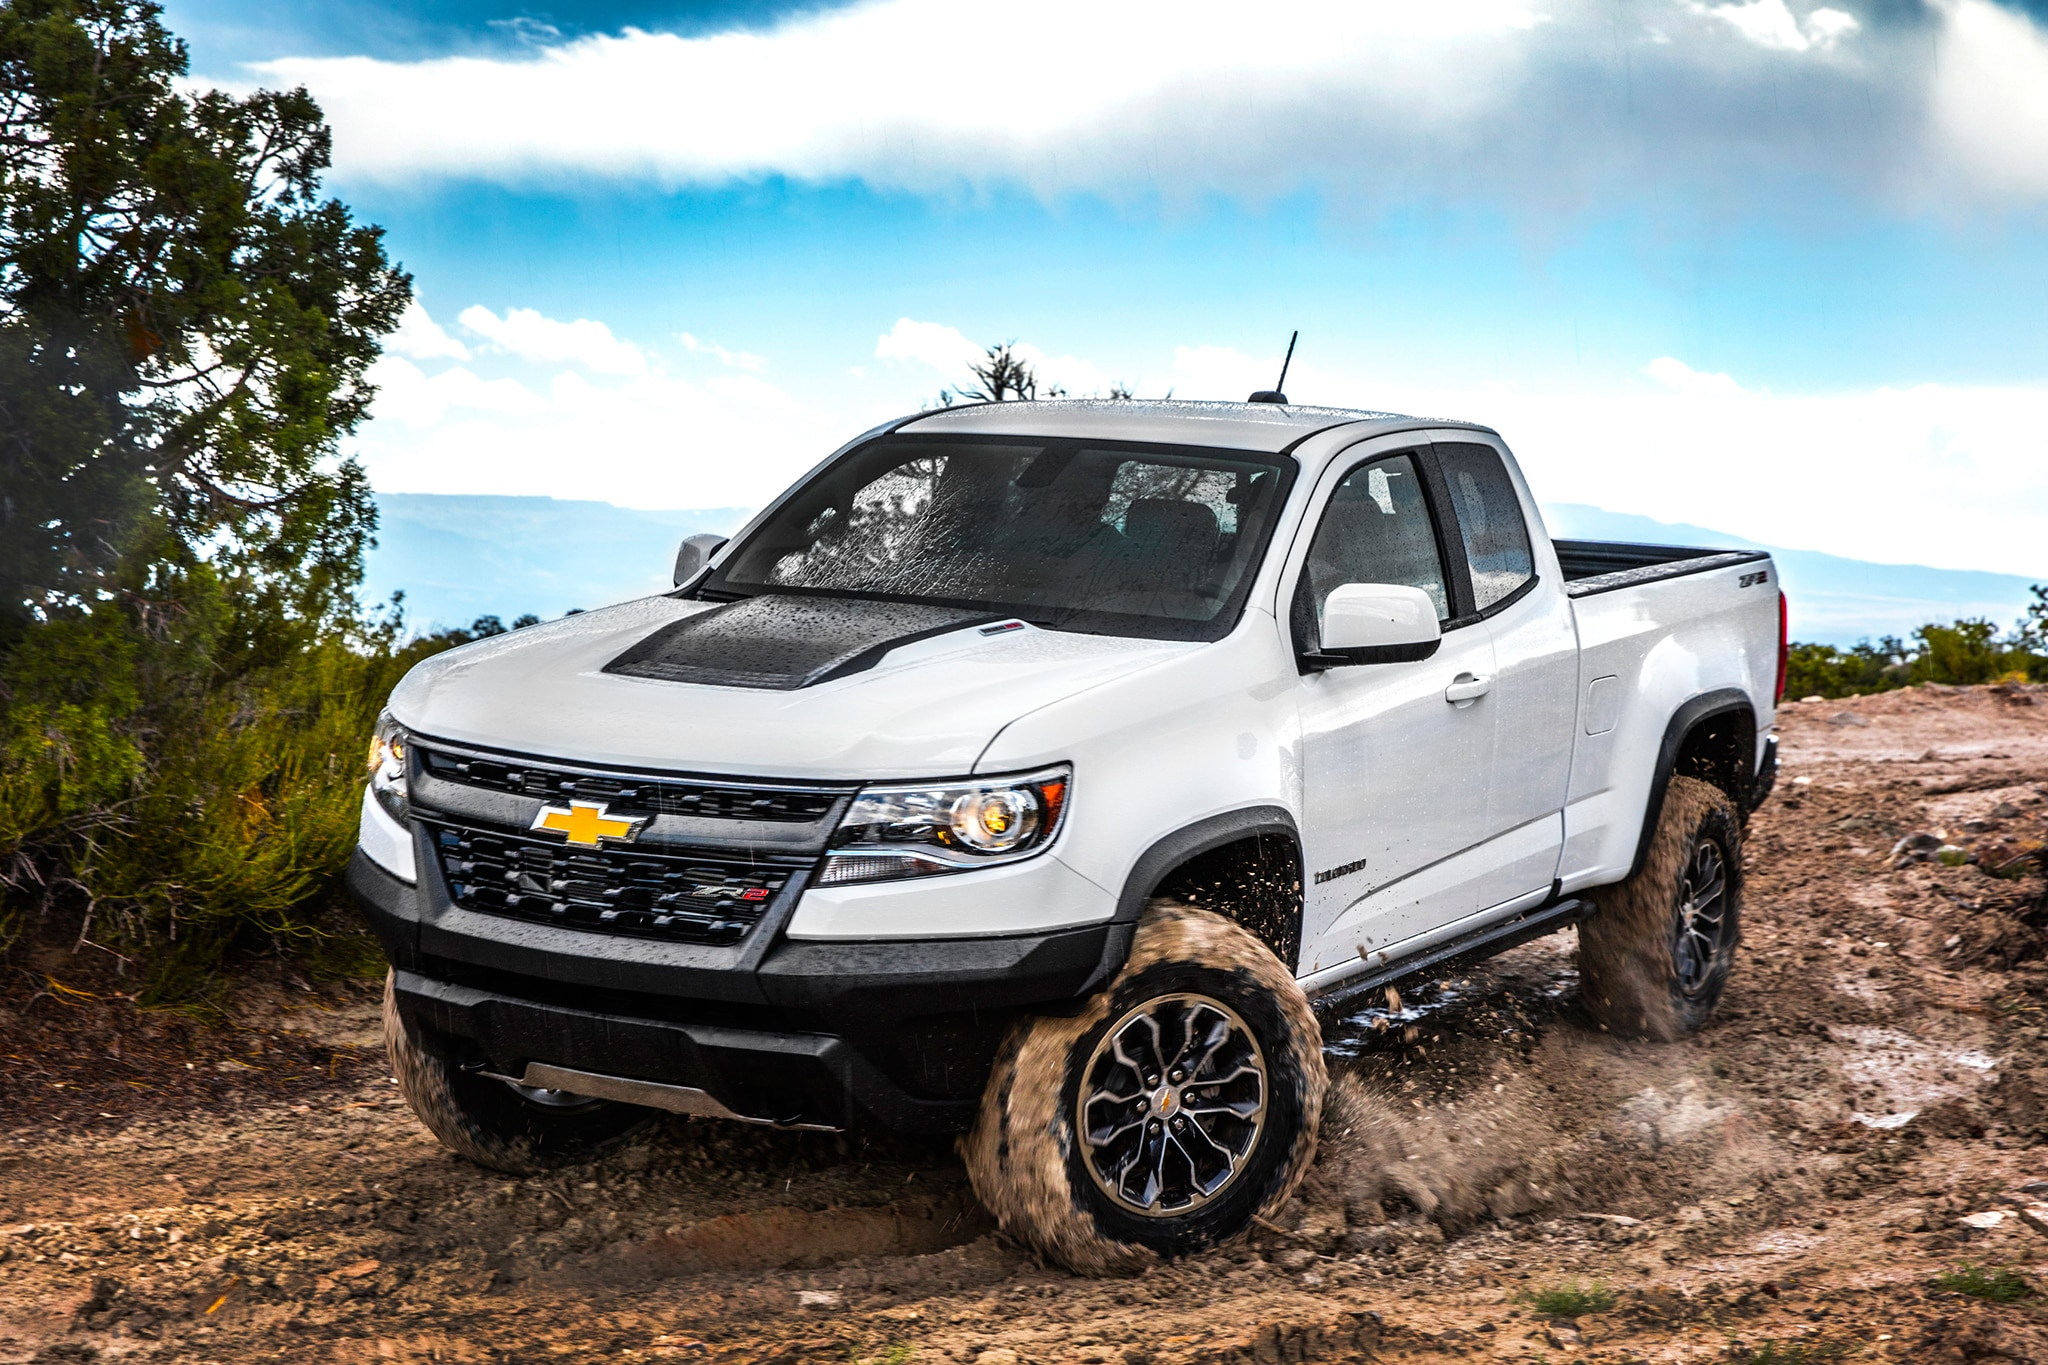 2019 Chevrolet Colorado ZR2 Review: Capable—and Safe, Too